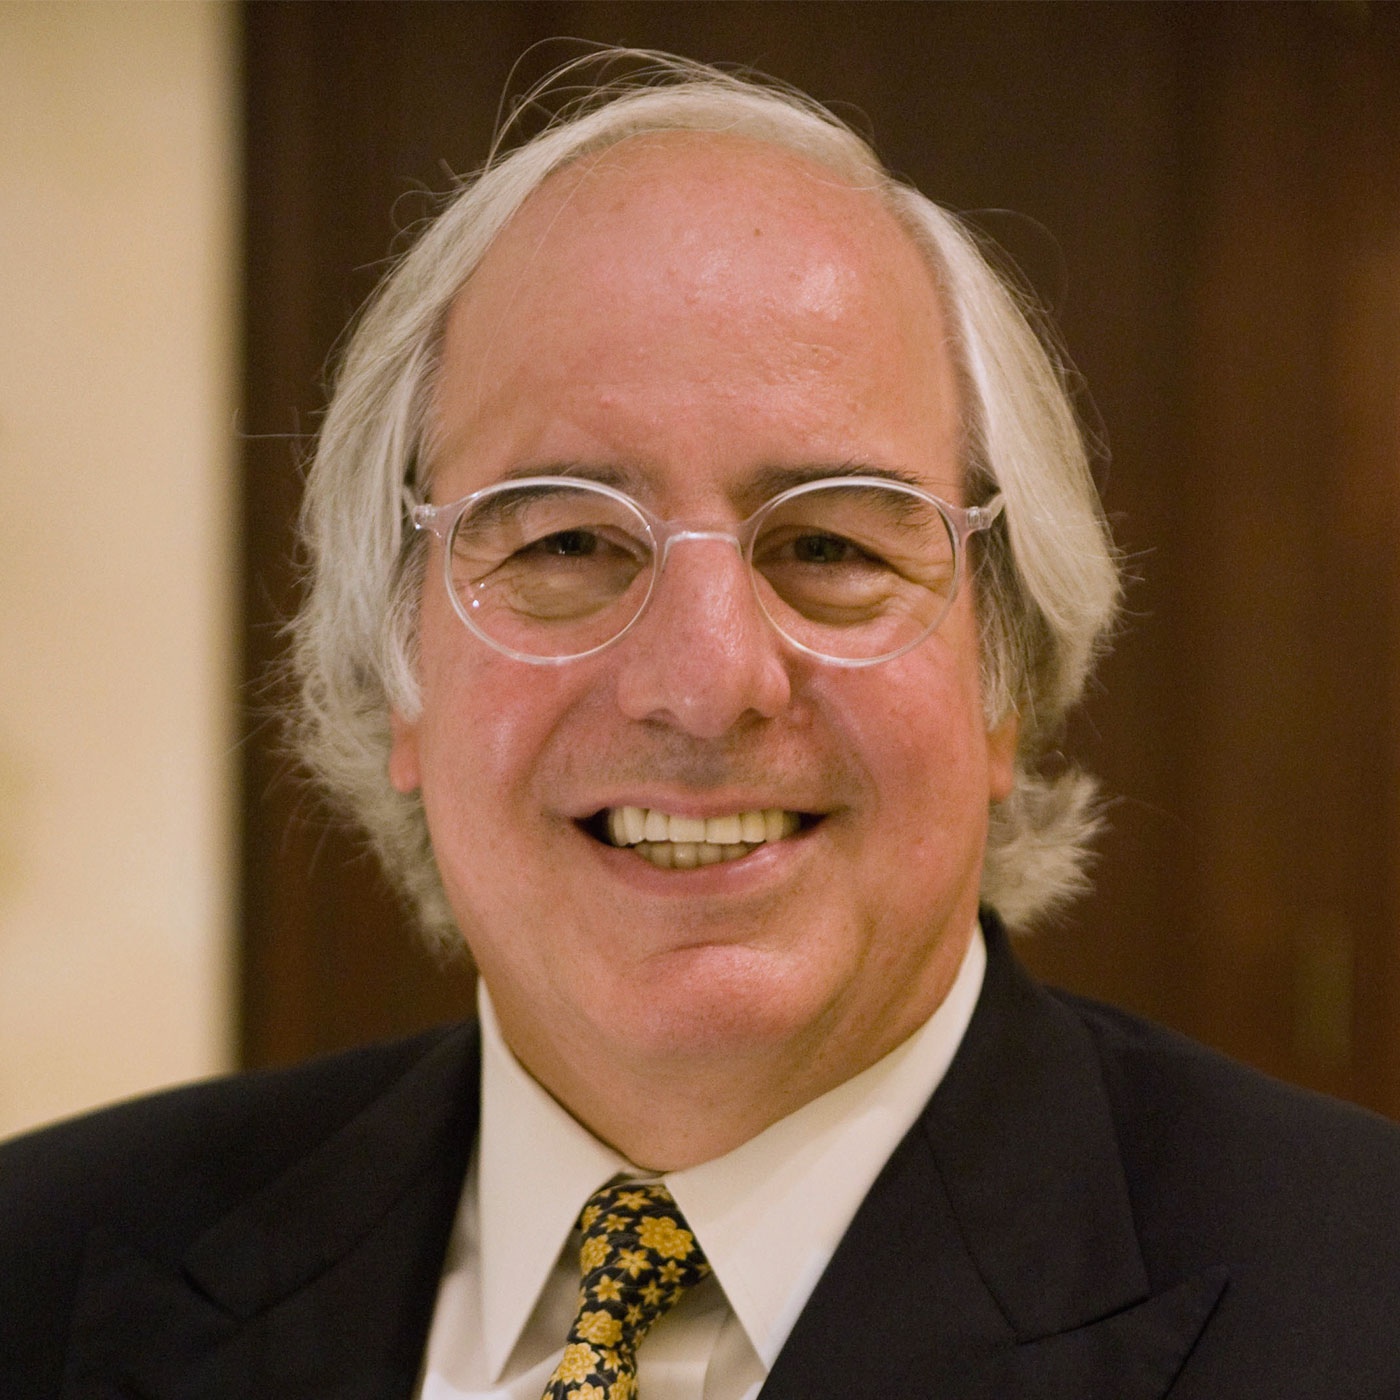 Frank Abagnale Scam Me If You Can